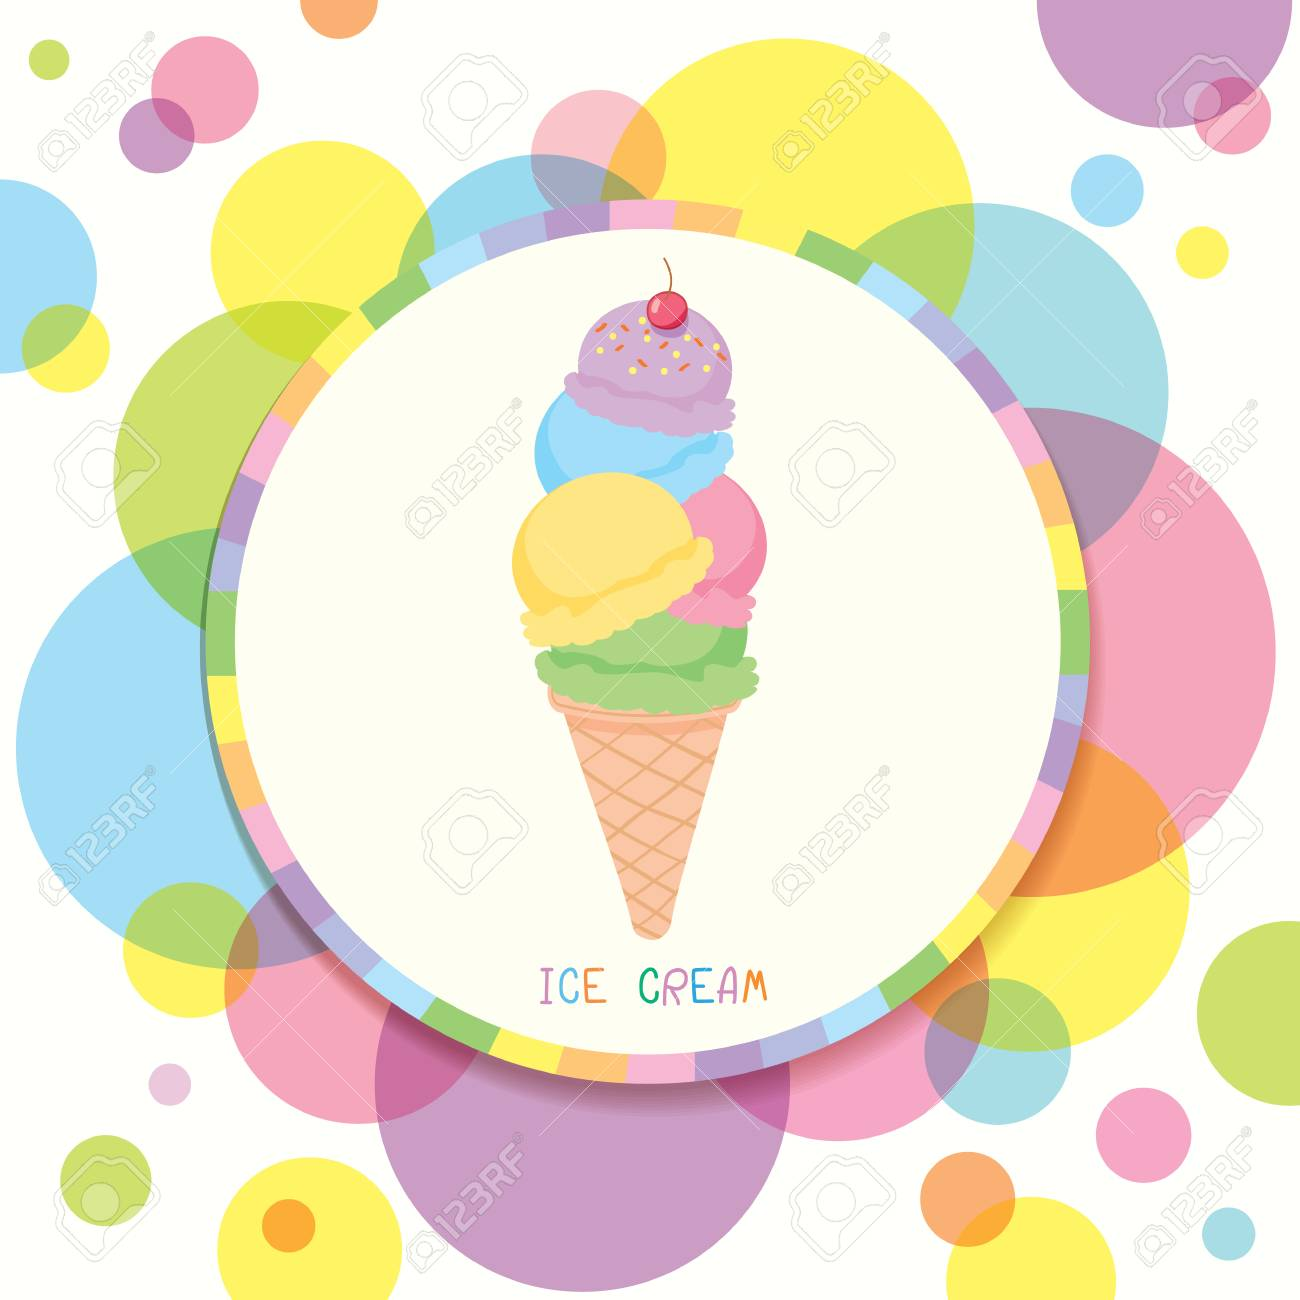 Ice Cream Cone Various Flavors Decorated With Circle Colorful